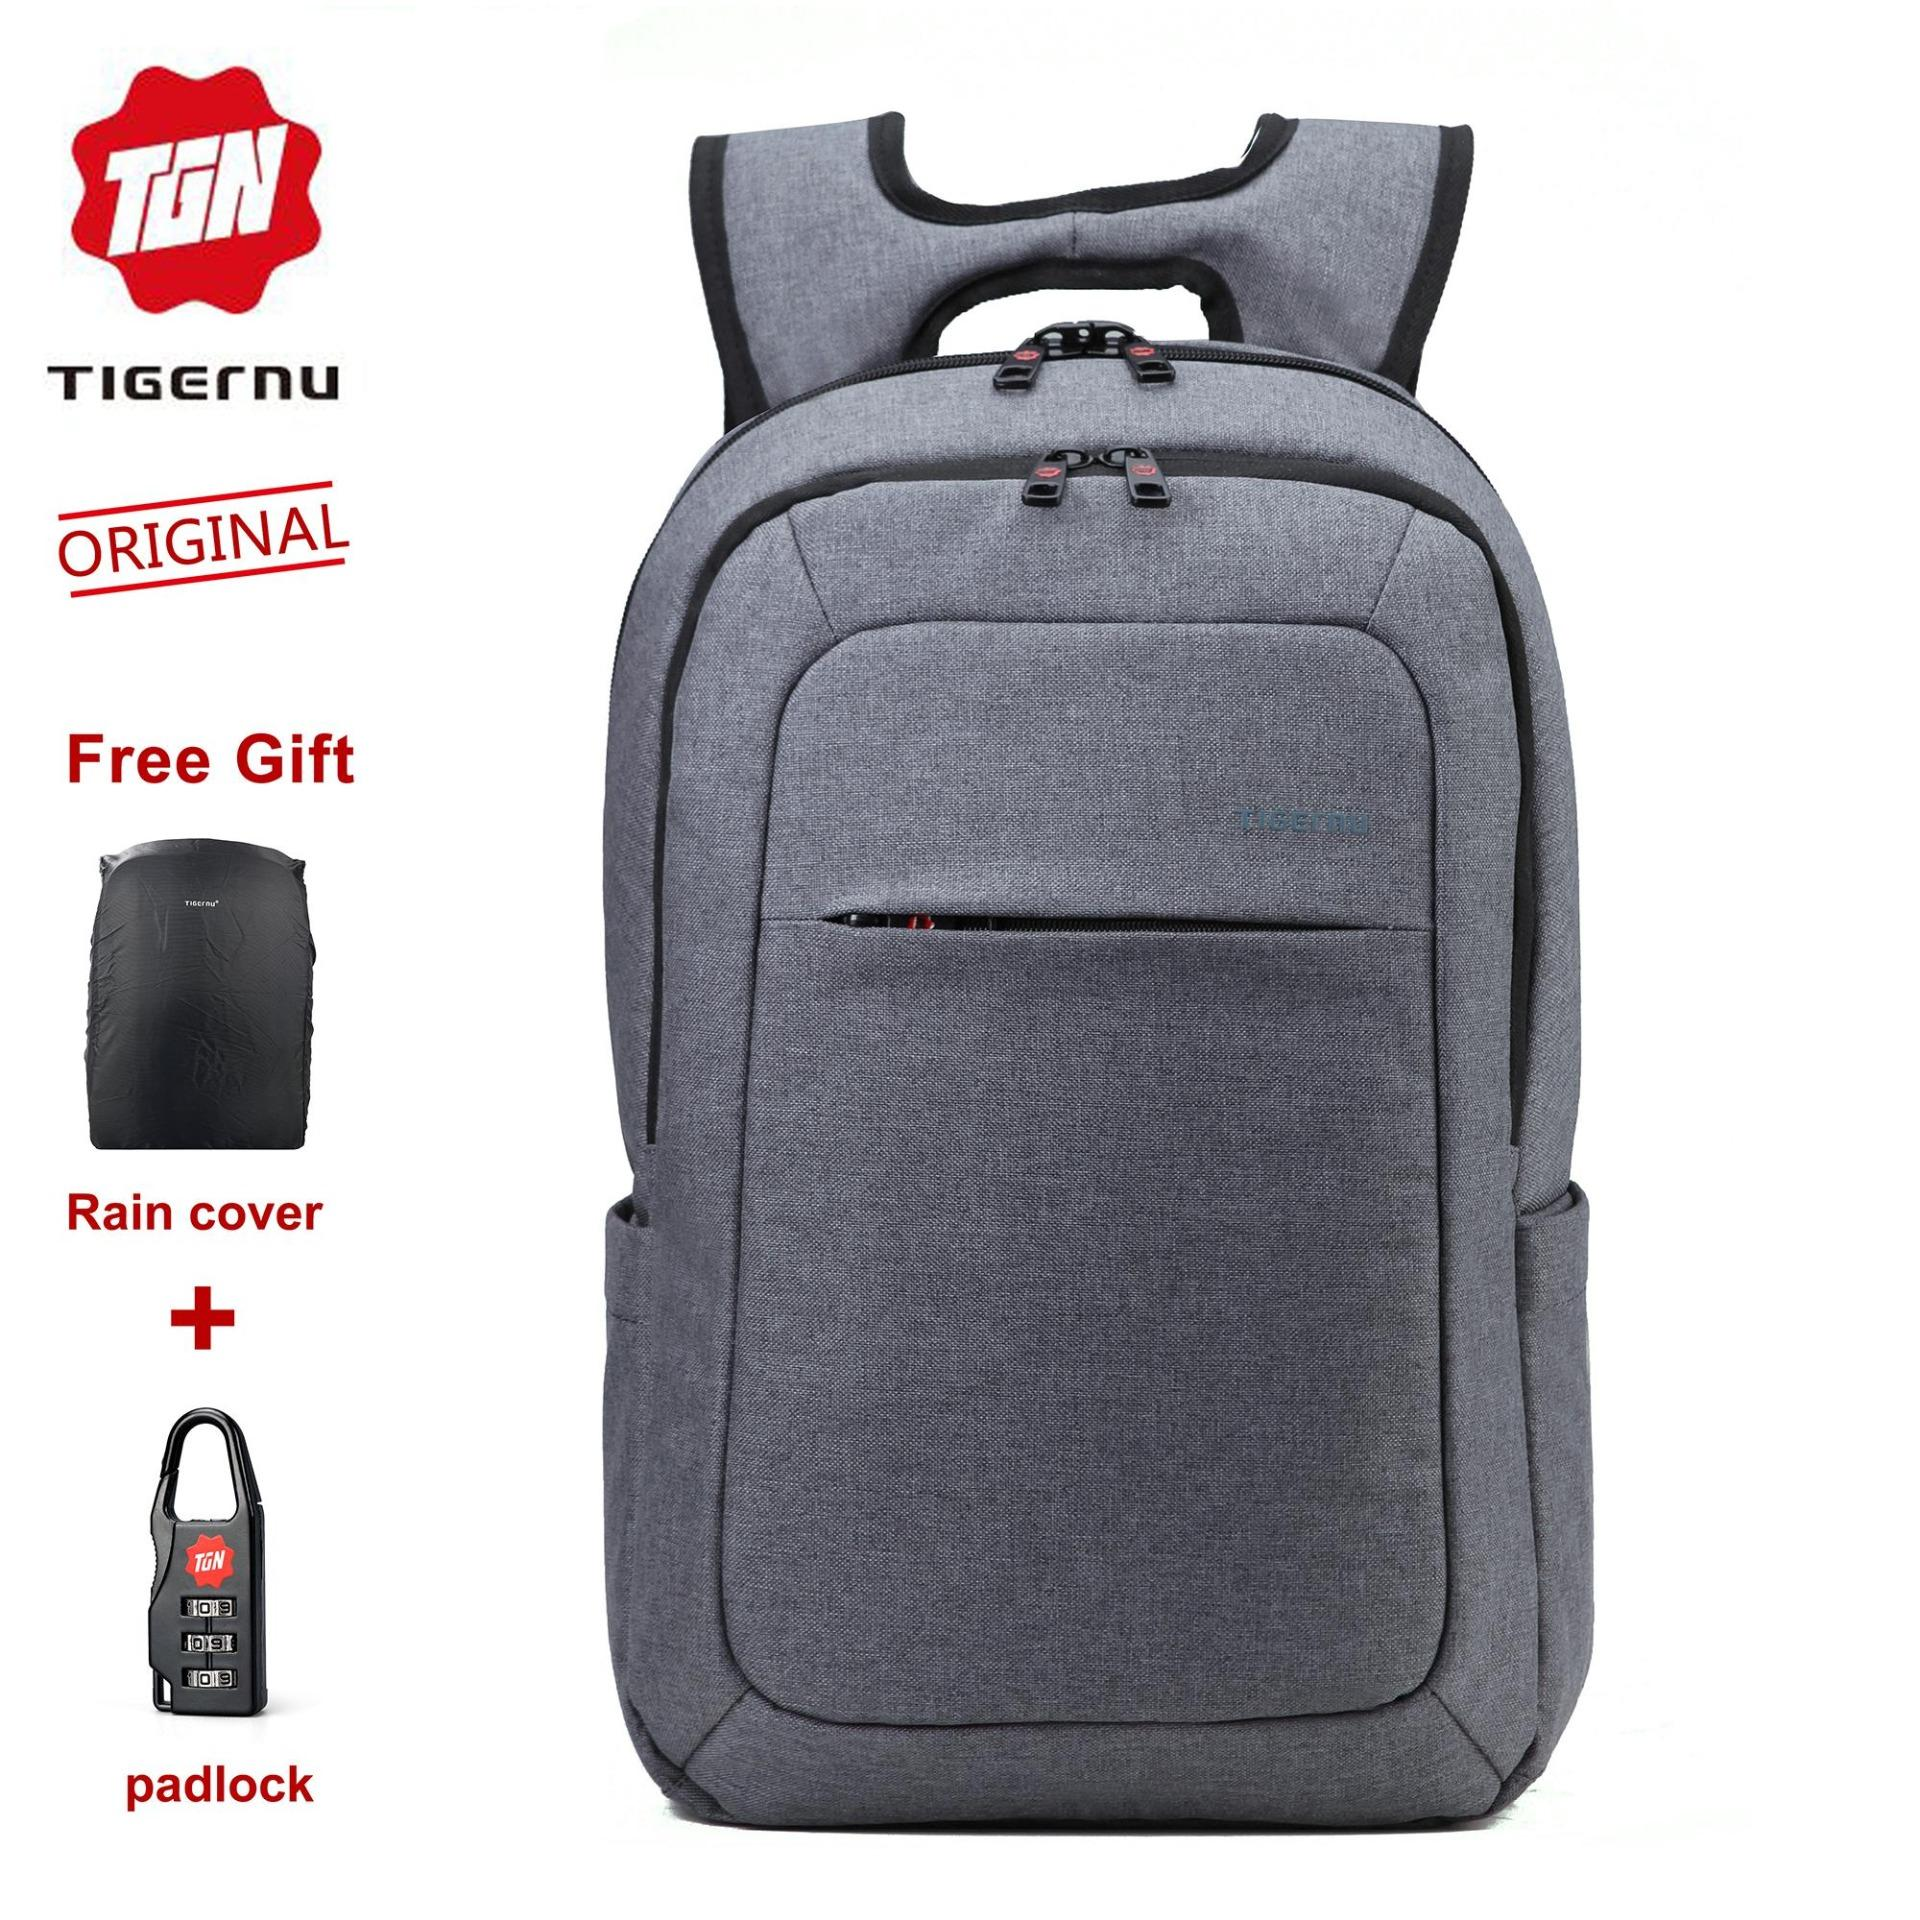 9ede512e0c7 Philippines. 2018 Tigernu LAZADA Hot selling Anti-theft Splash proof  Fashion Travel Backpack Fit for 10.1